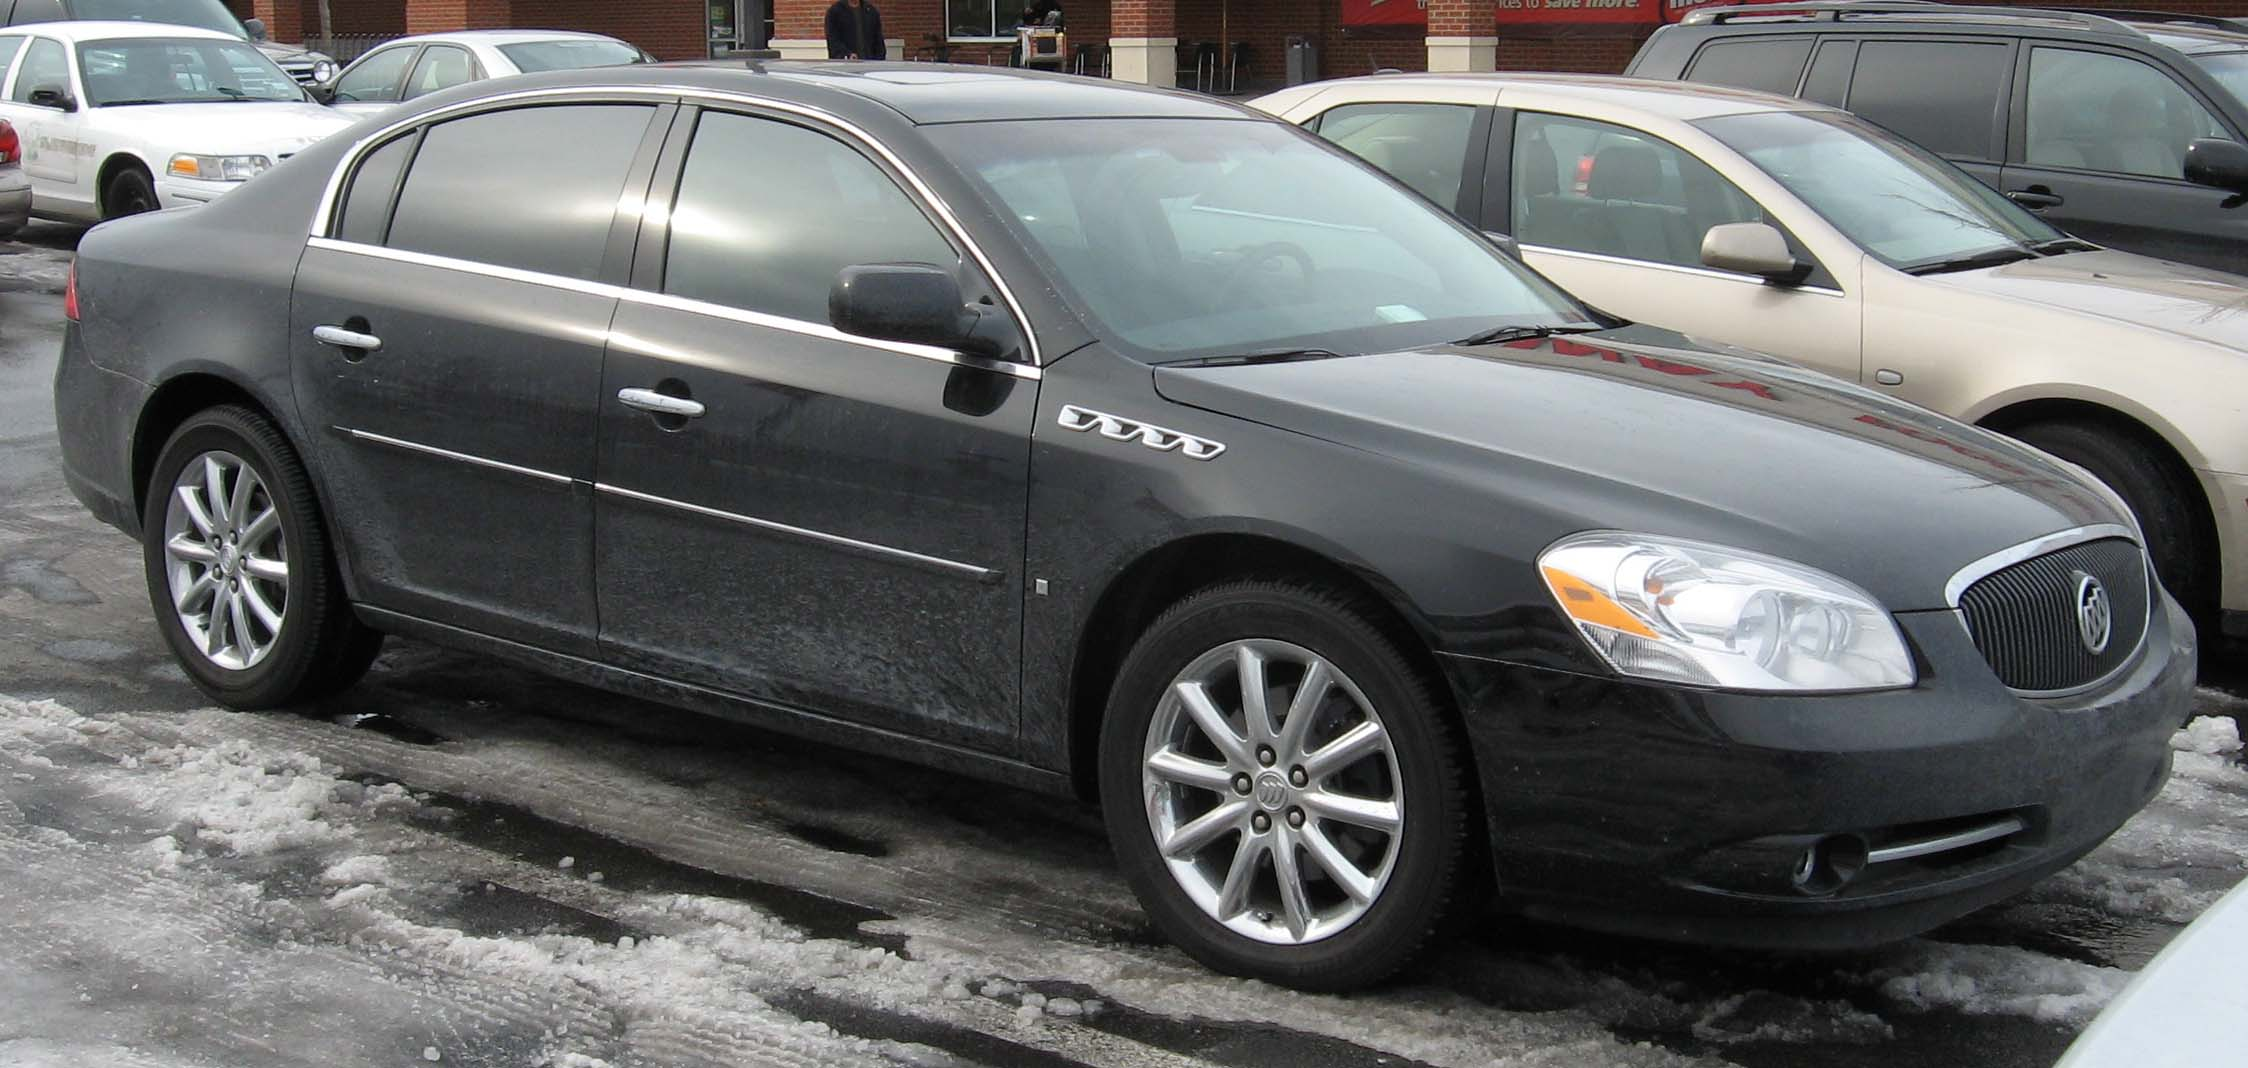 File 06 07 Buick Lucerne Cxs Jpg Wikimedia Commons